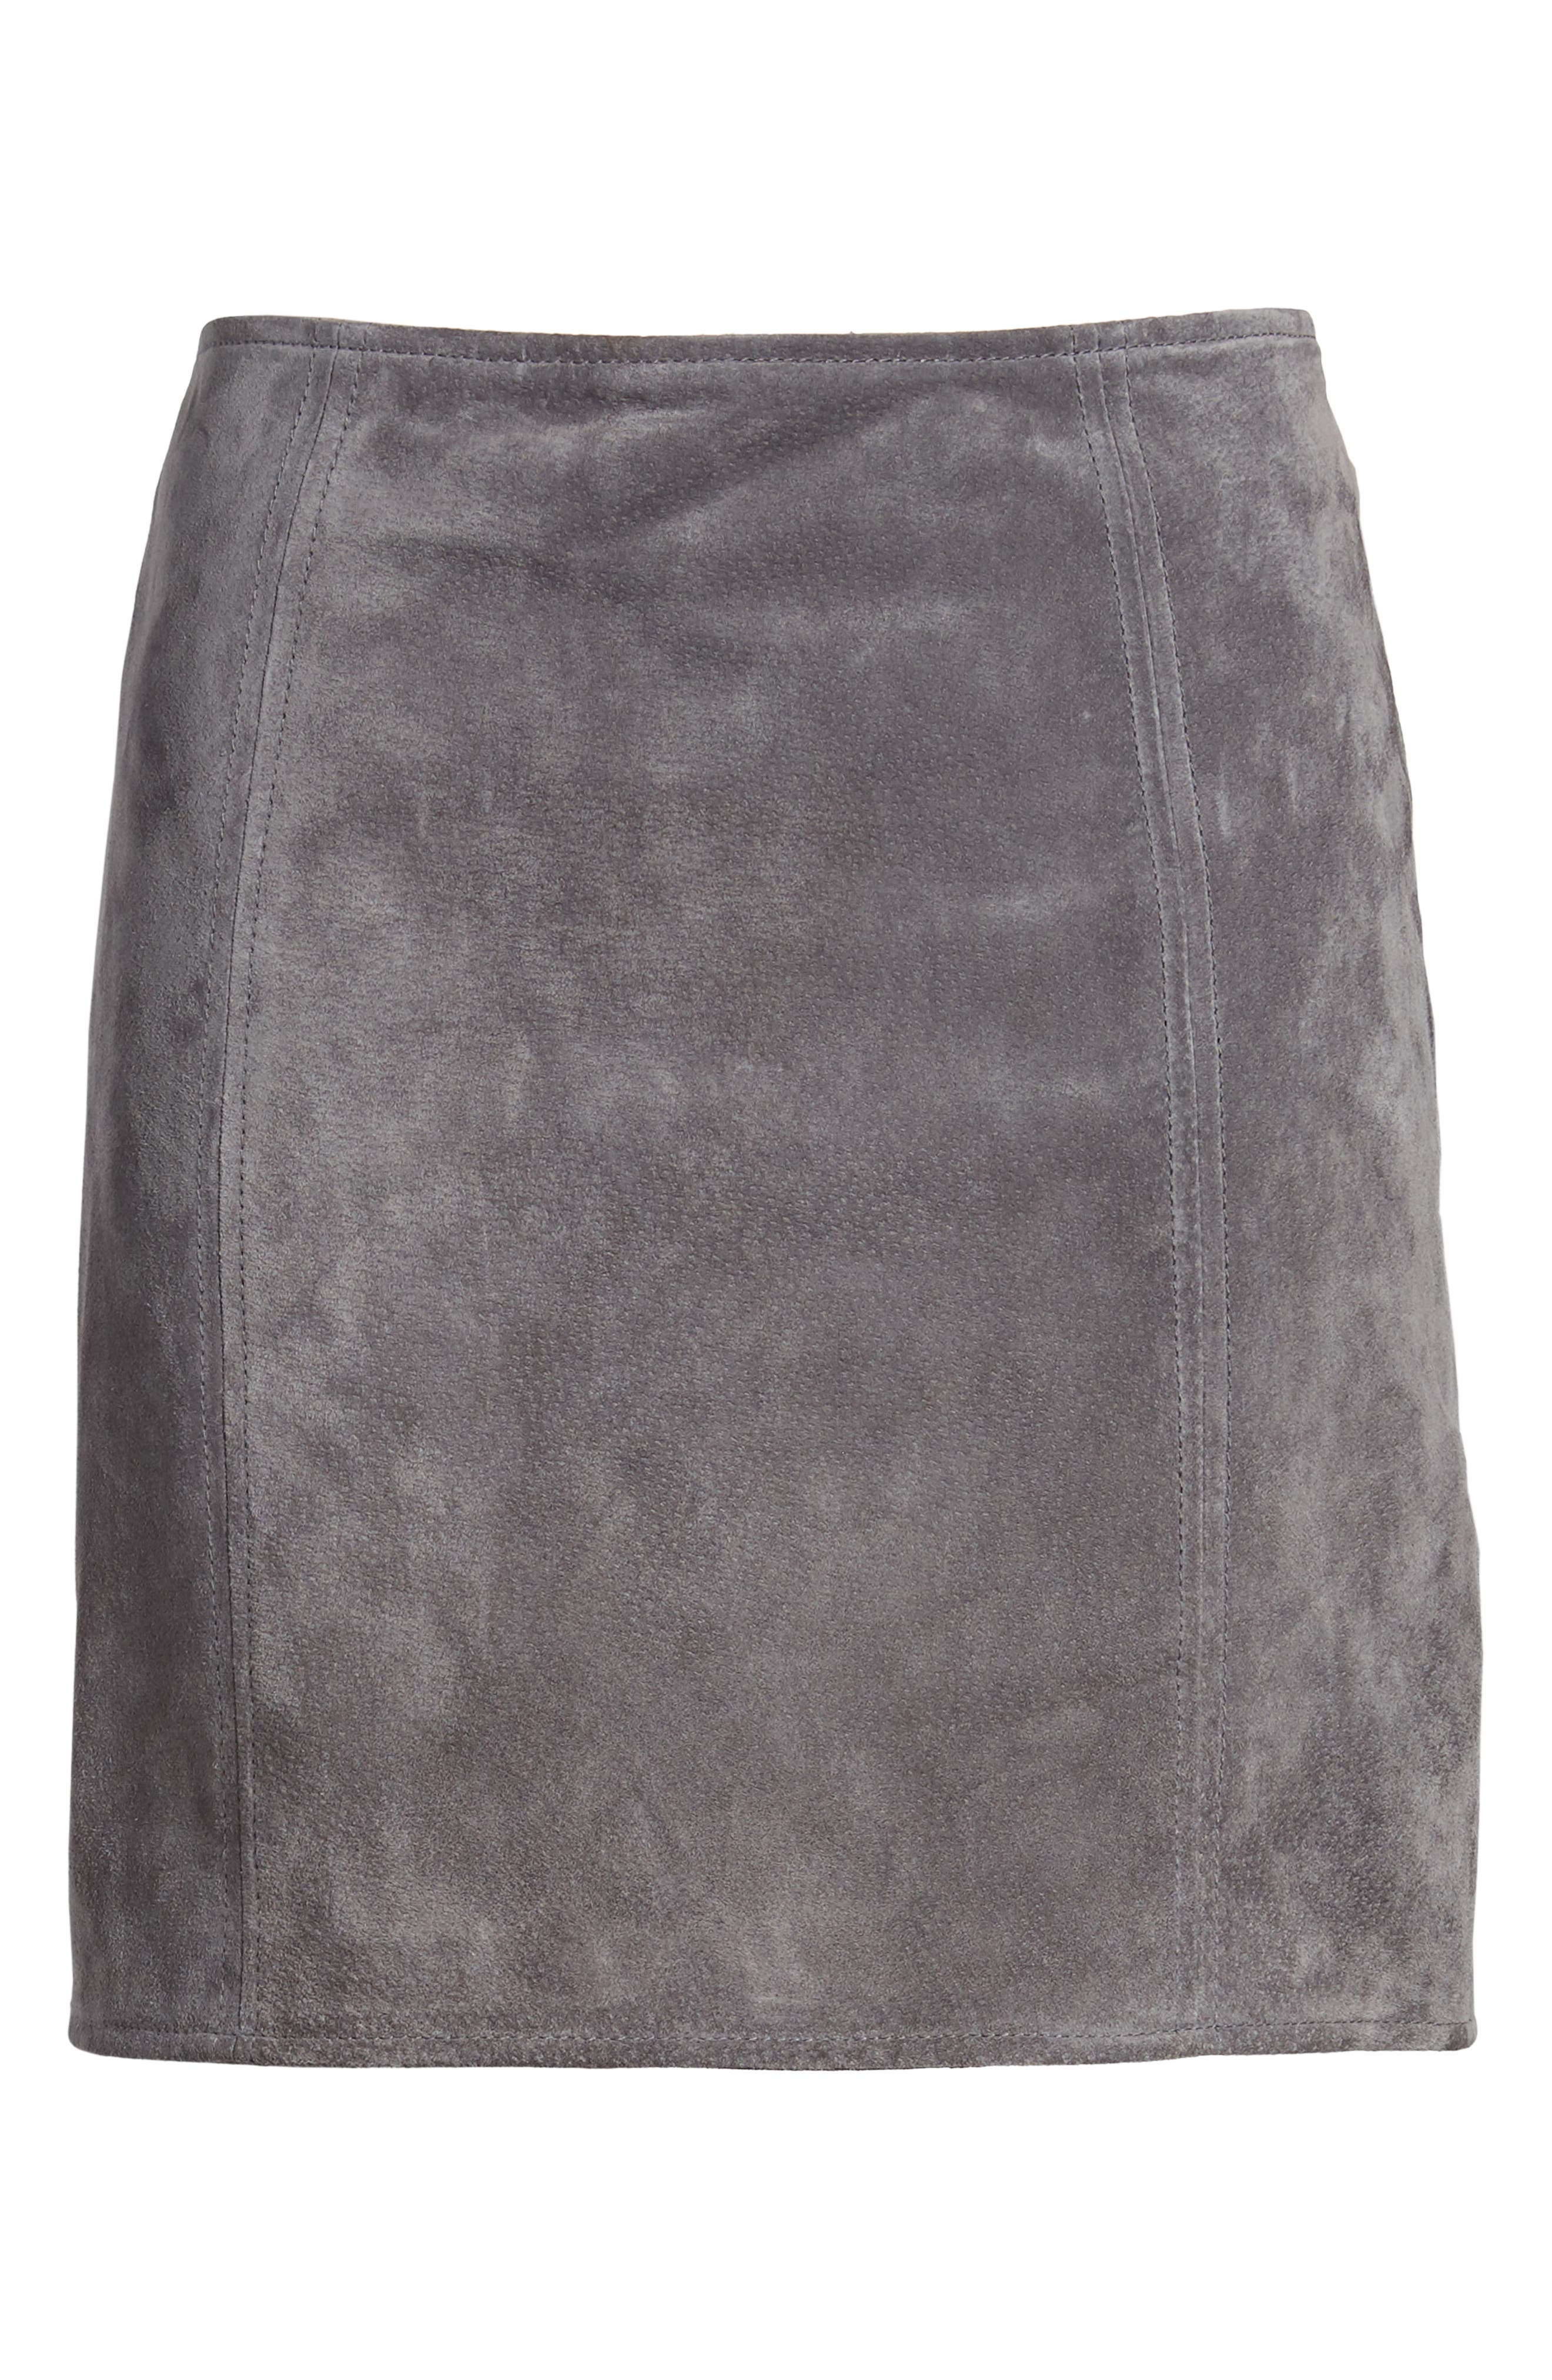 BLANKNYC, A-Line Suede Skirt, Alternate thumbnail 6, color, 020